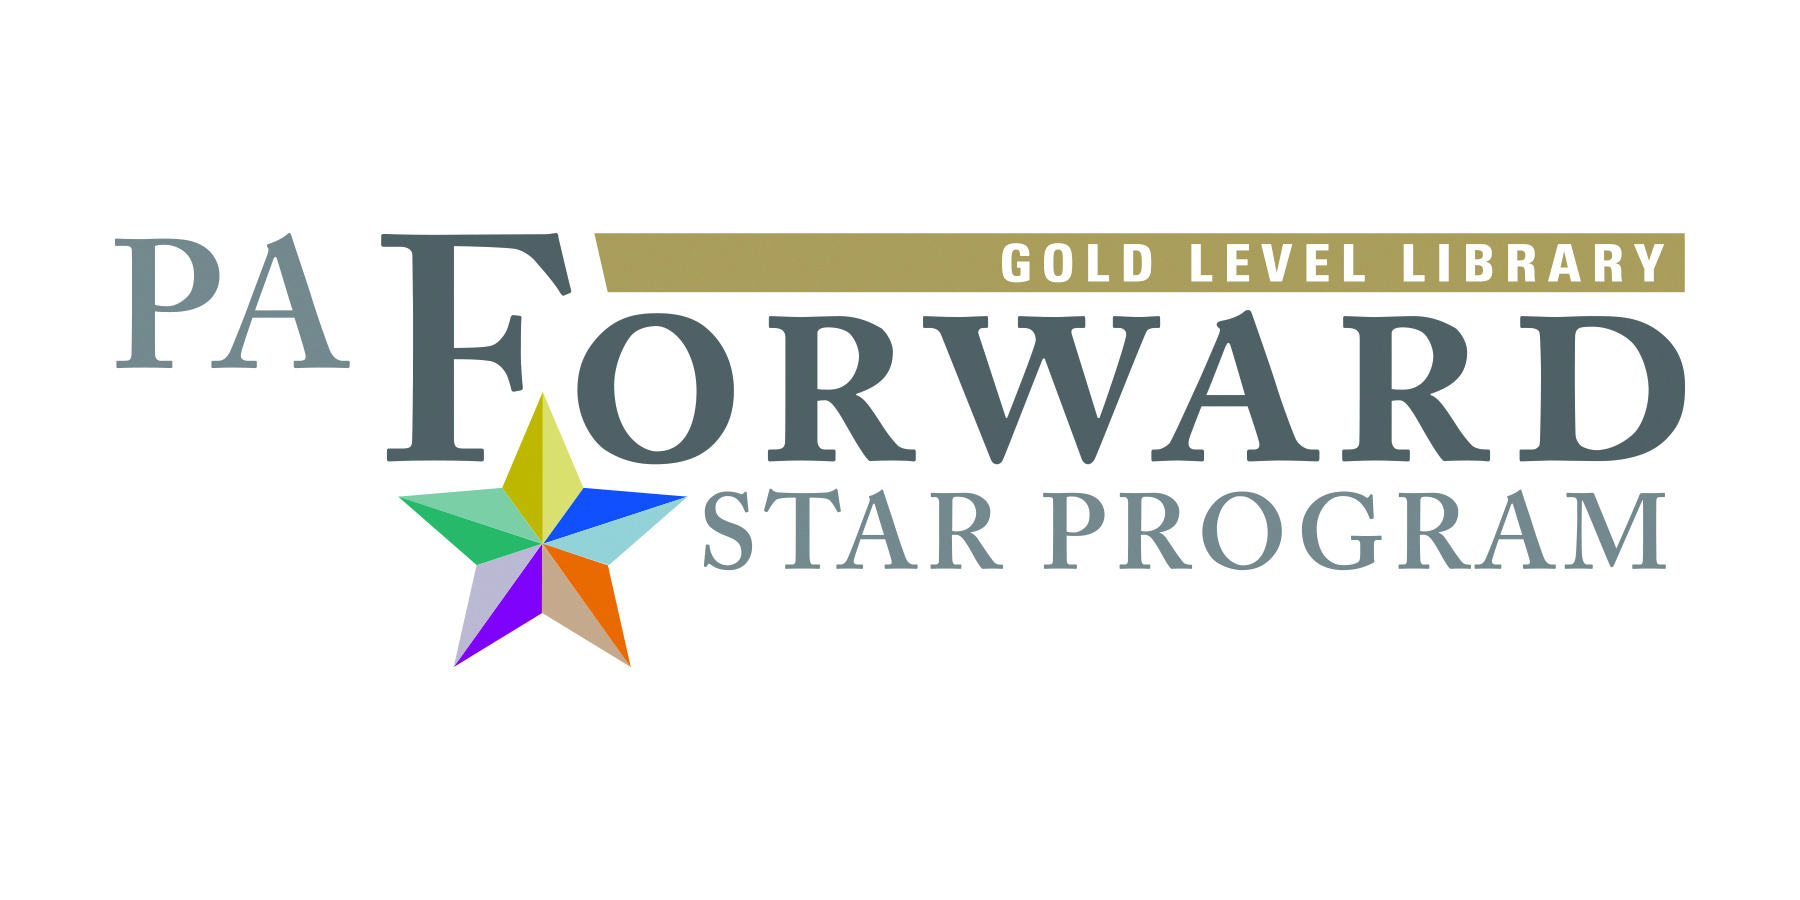 PA Forward Star Program - Gold Level Library